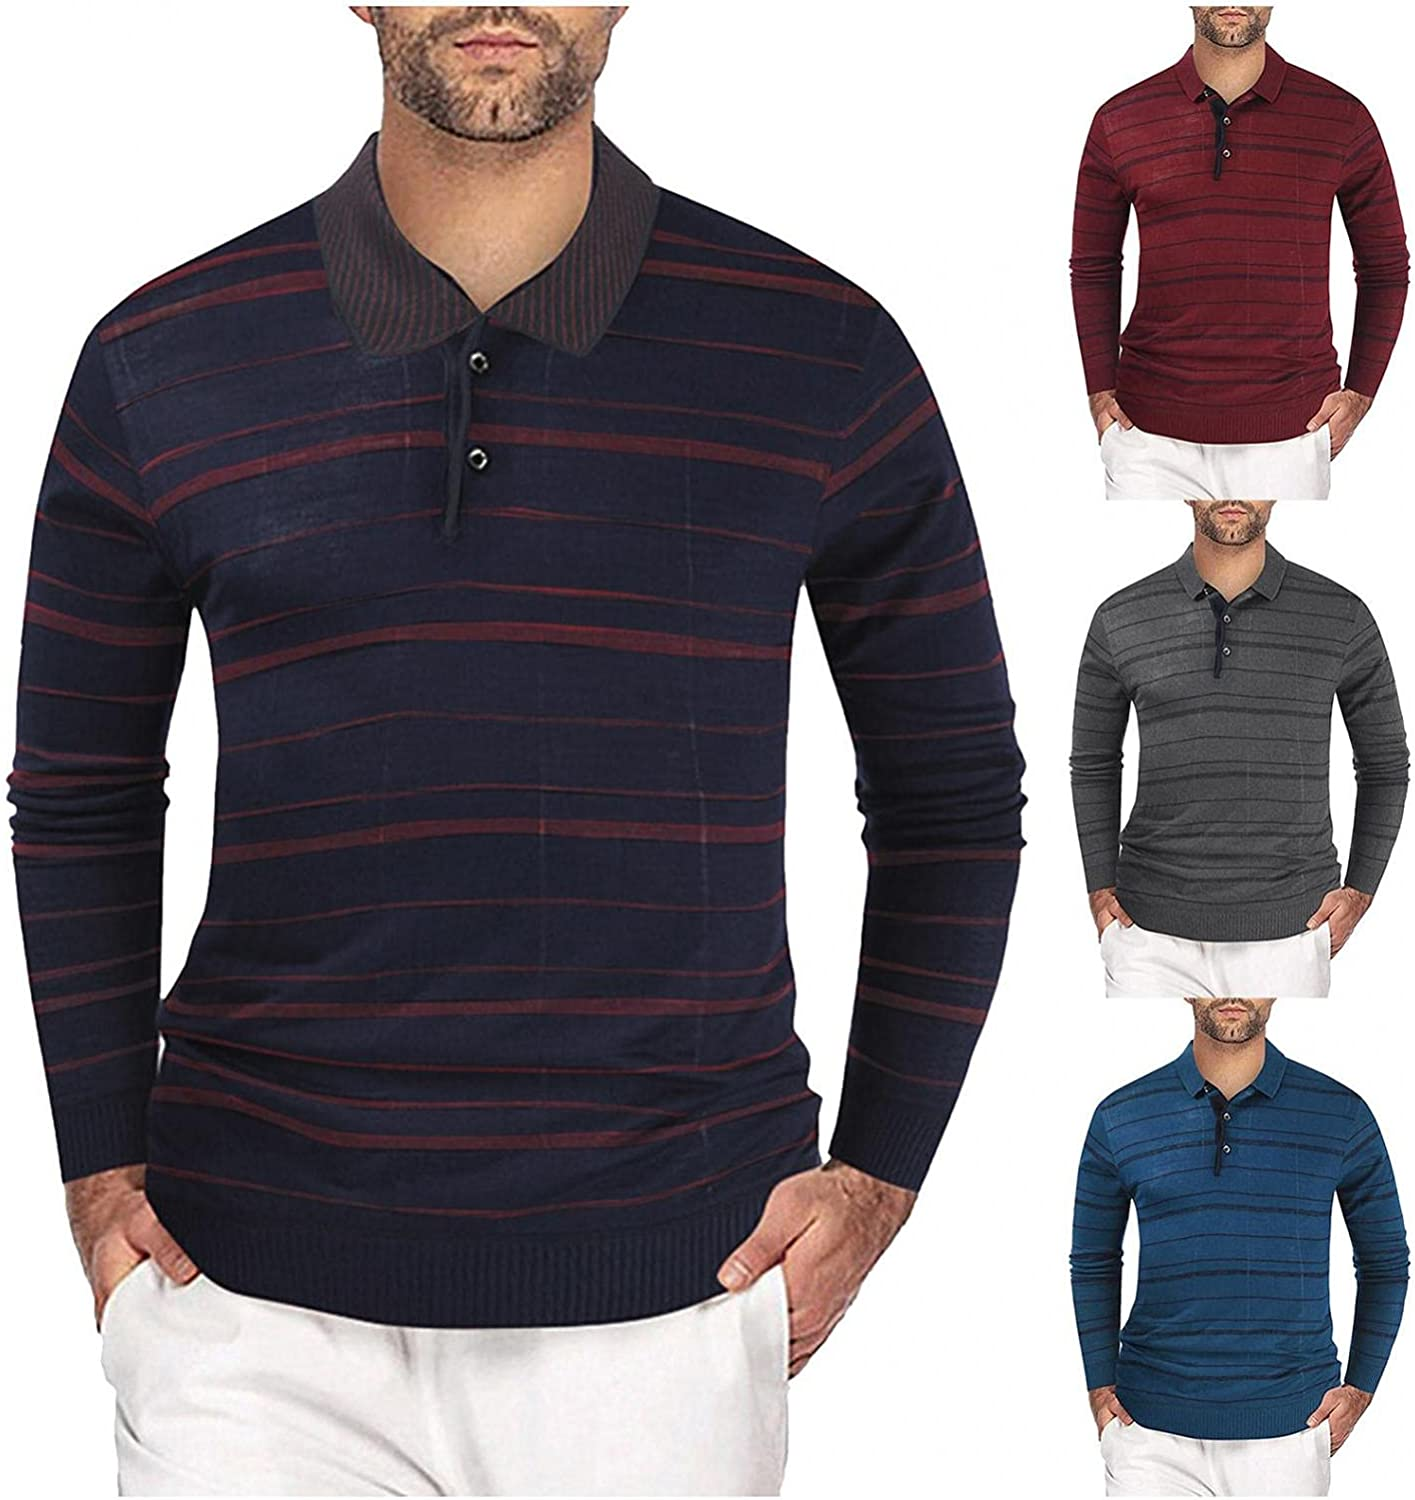 Men's Sweaters Pullovers Men's Button Lapel Sweater Warm Pullover Striped Casual Slim Long Sleeve Knitted Sweater